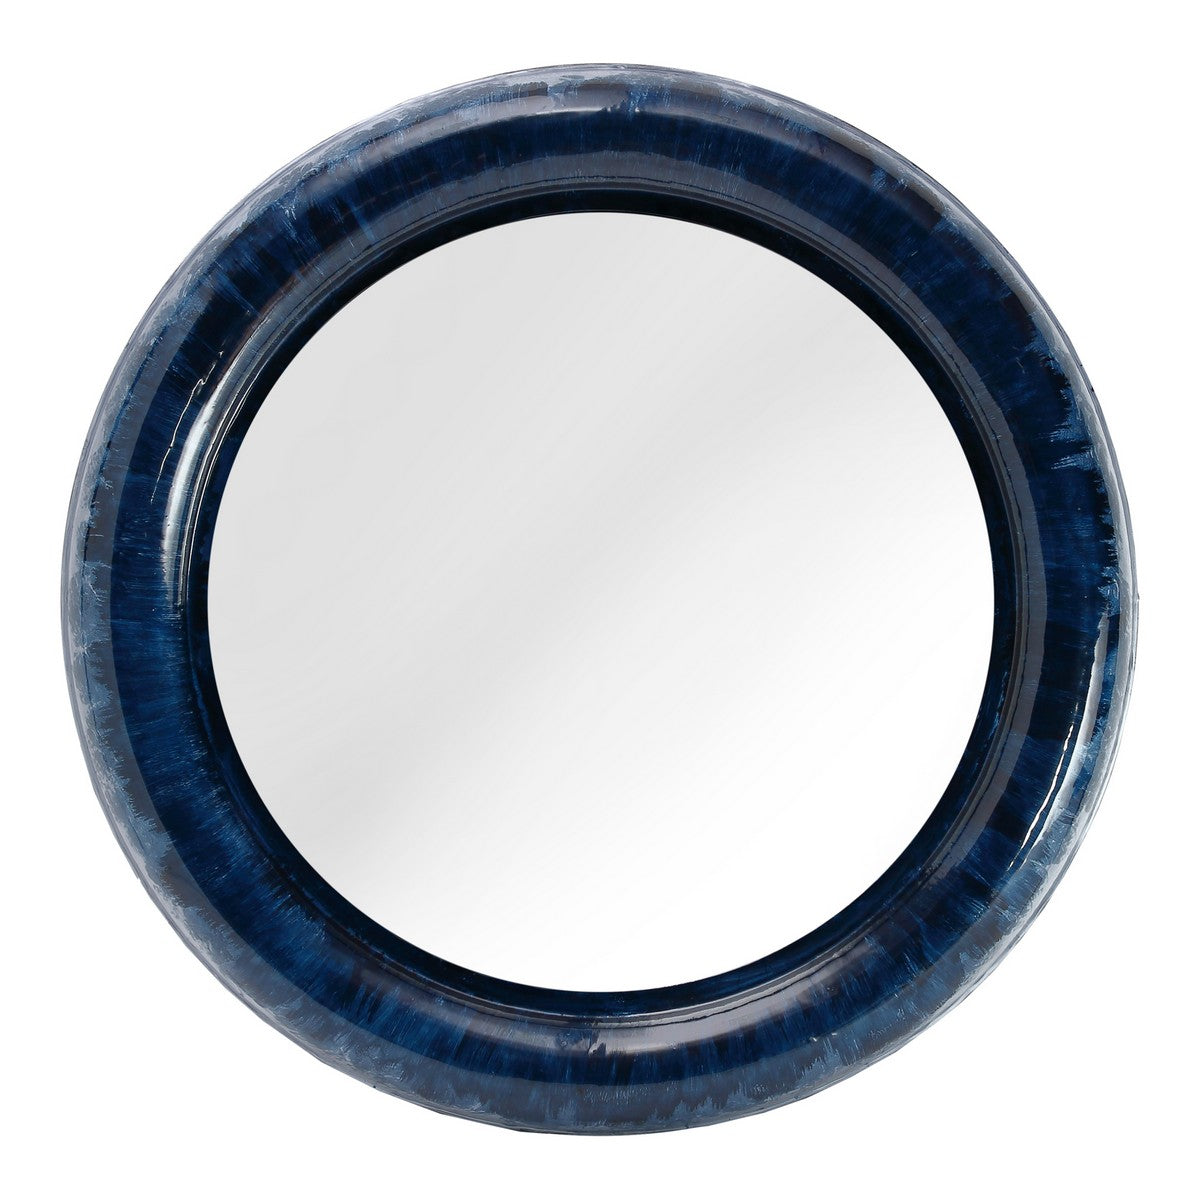 Moe's Home Collection Atlantis Mirror Blue - IX-1110-26 - Moe's Home Collection - Mirrors - Minimal And Modern - 1